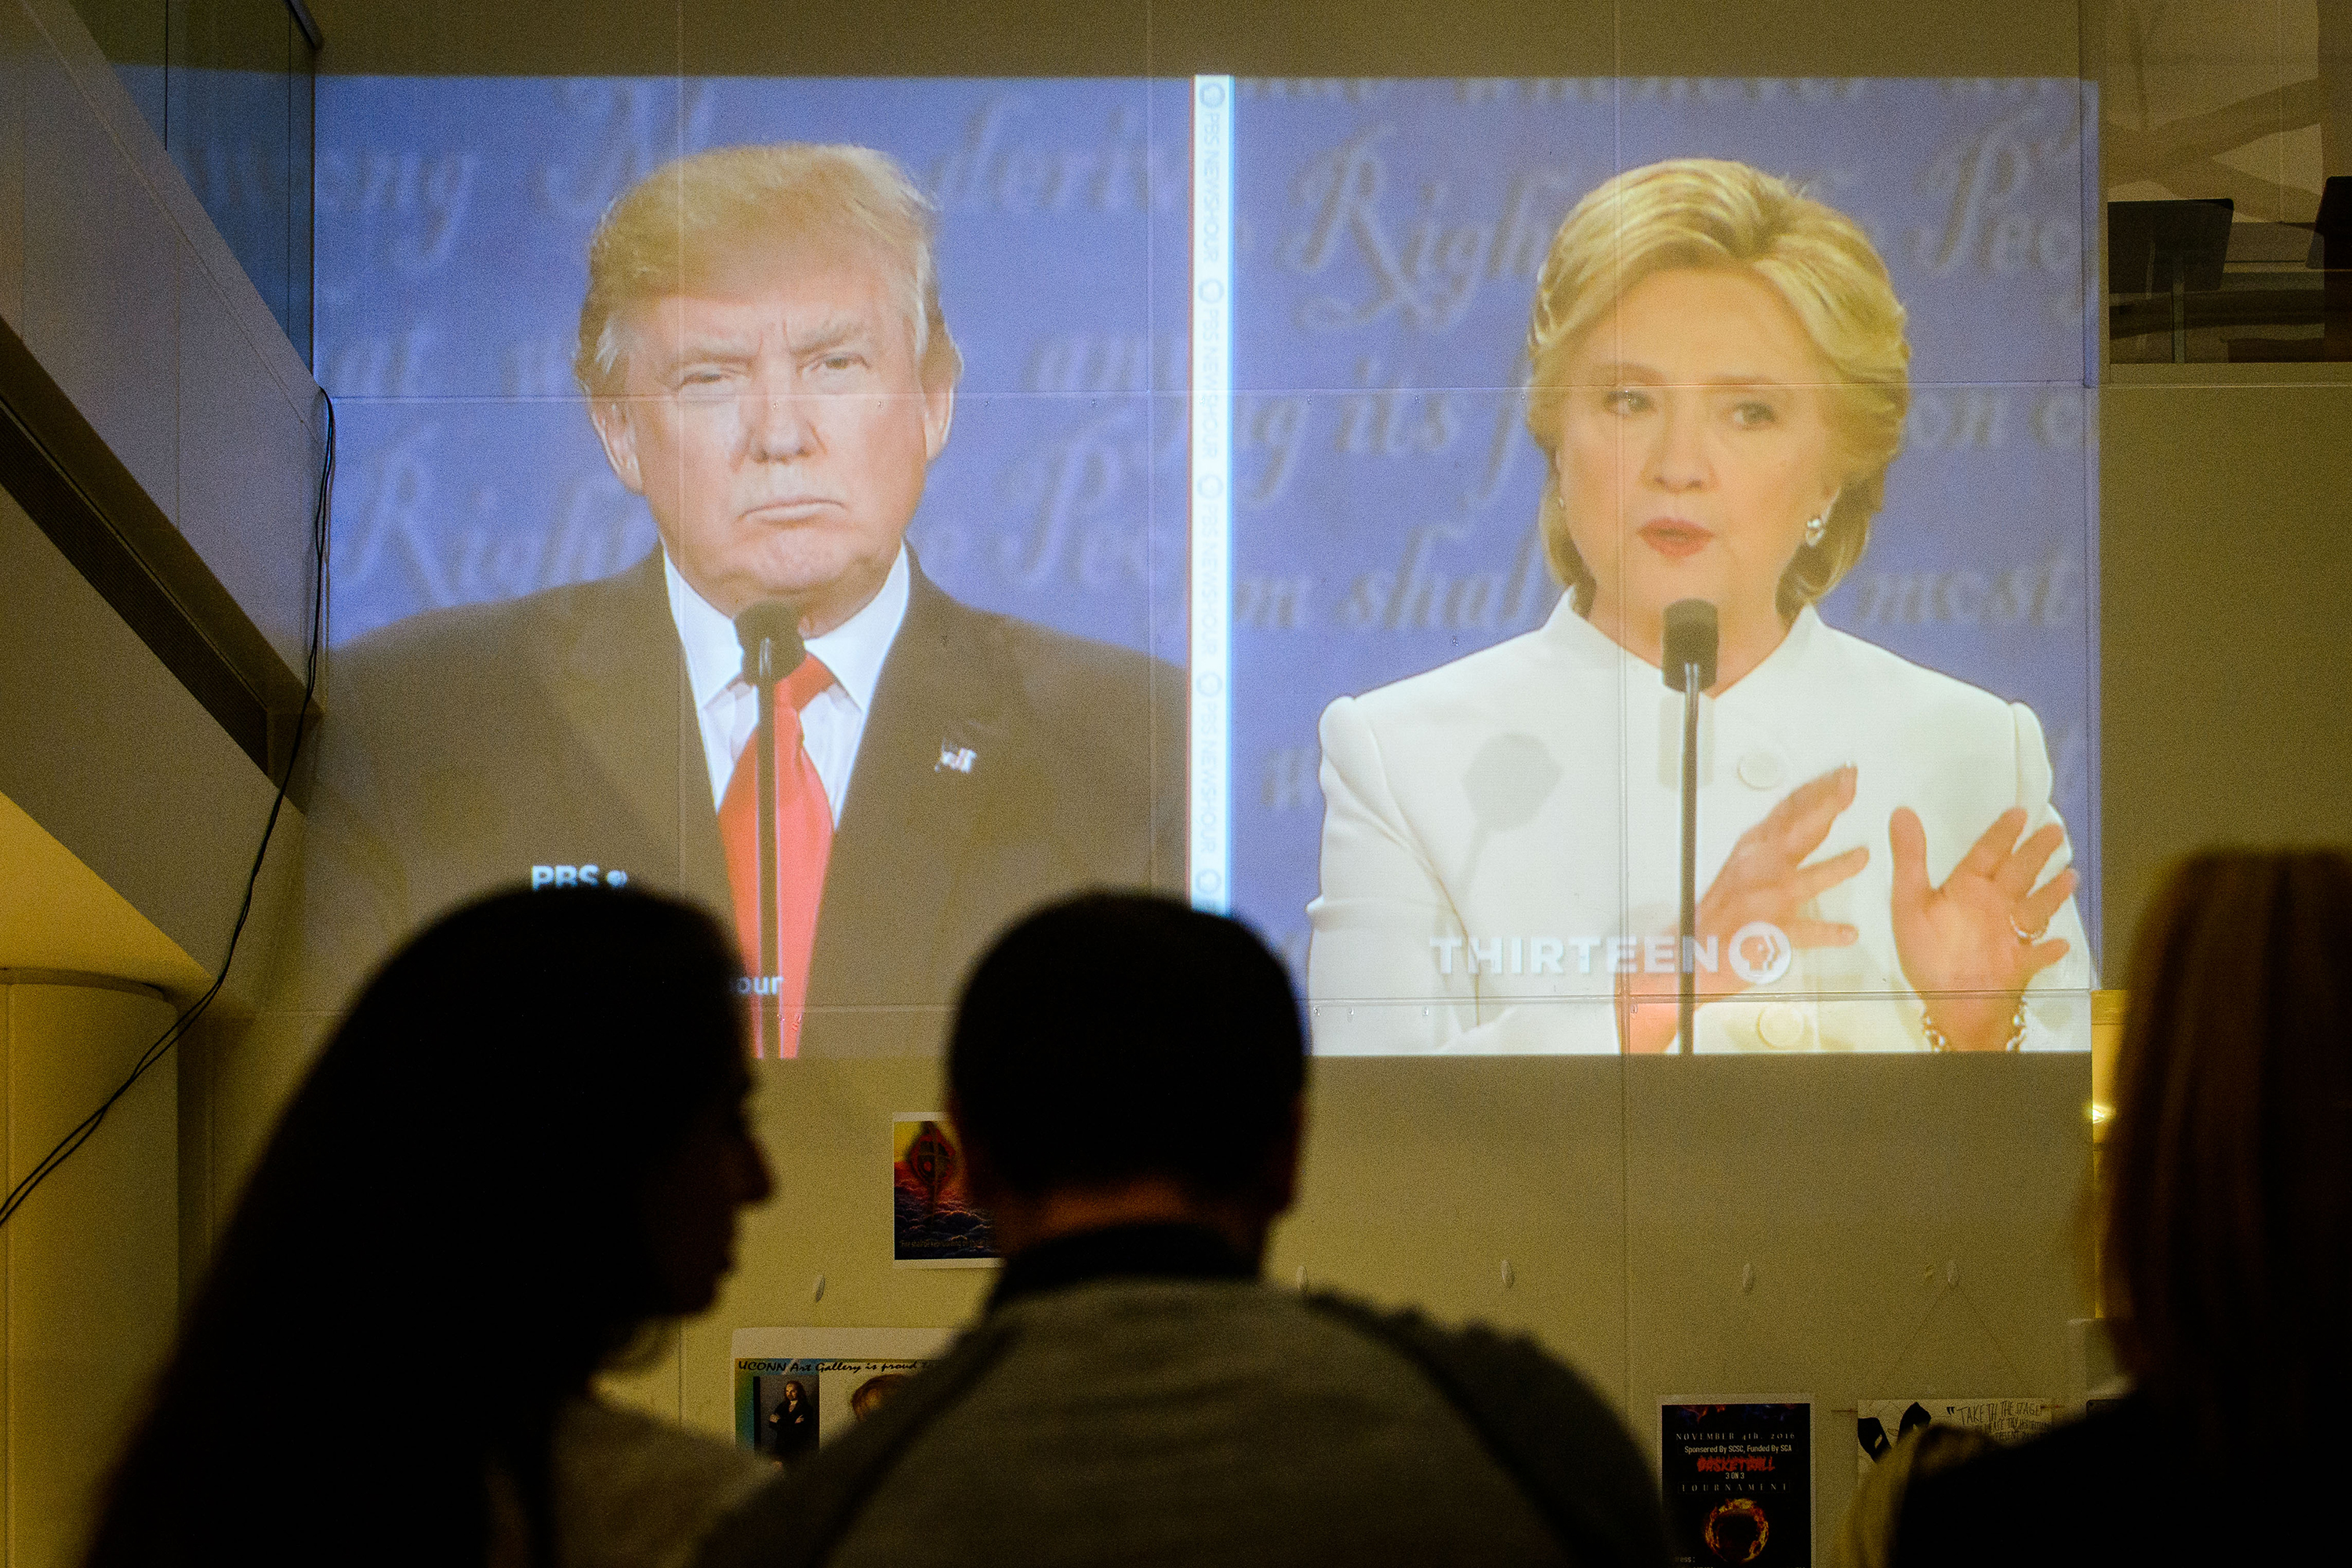 Students, faculty, and staff watch the third presidential debate in the Rich Concourse at the Stamford campus on Oct. 19, 2016. (Peter Morenus/UConn Photo)